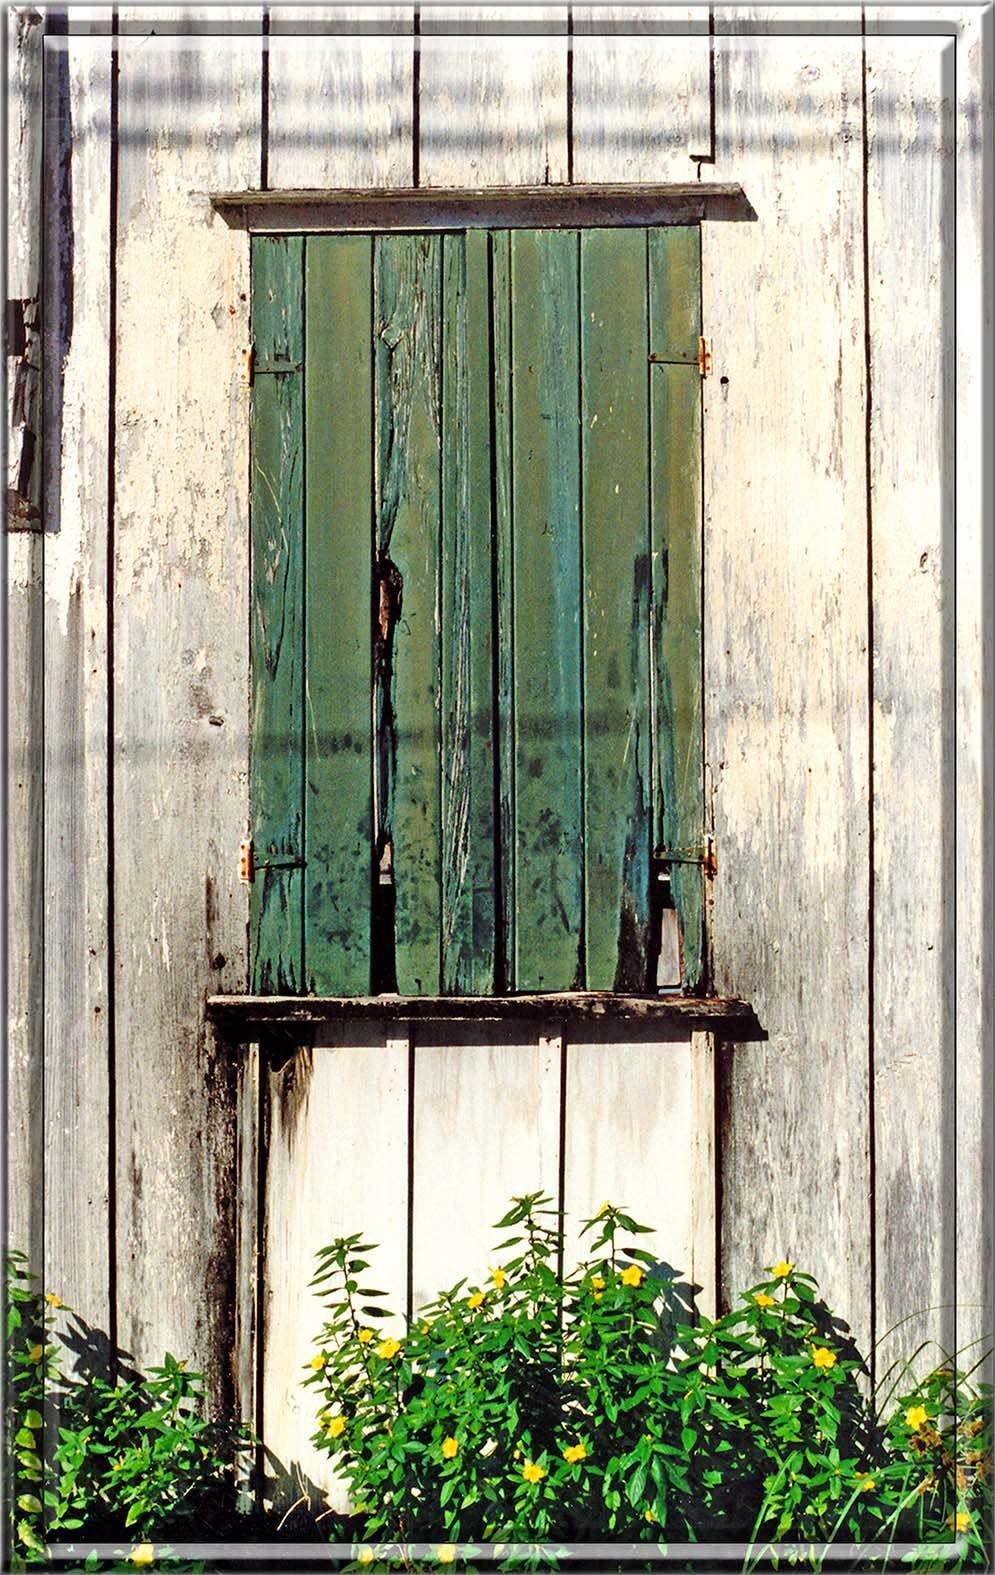 GREEN SHUTTERS WITH FLOWERS * 6'' x 11'' 10293